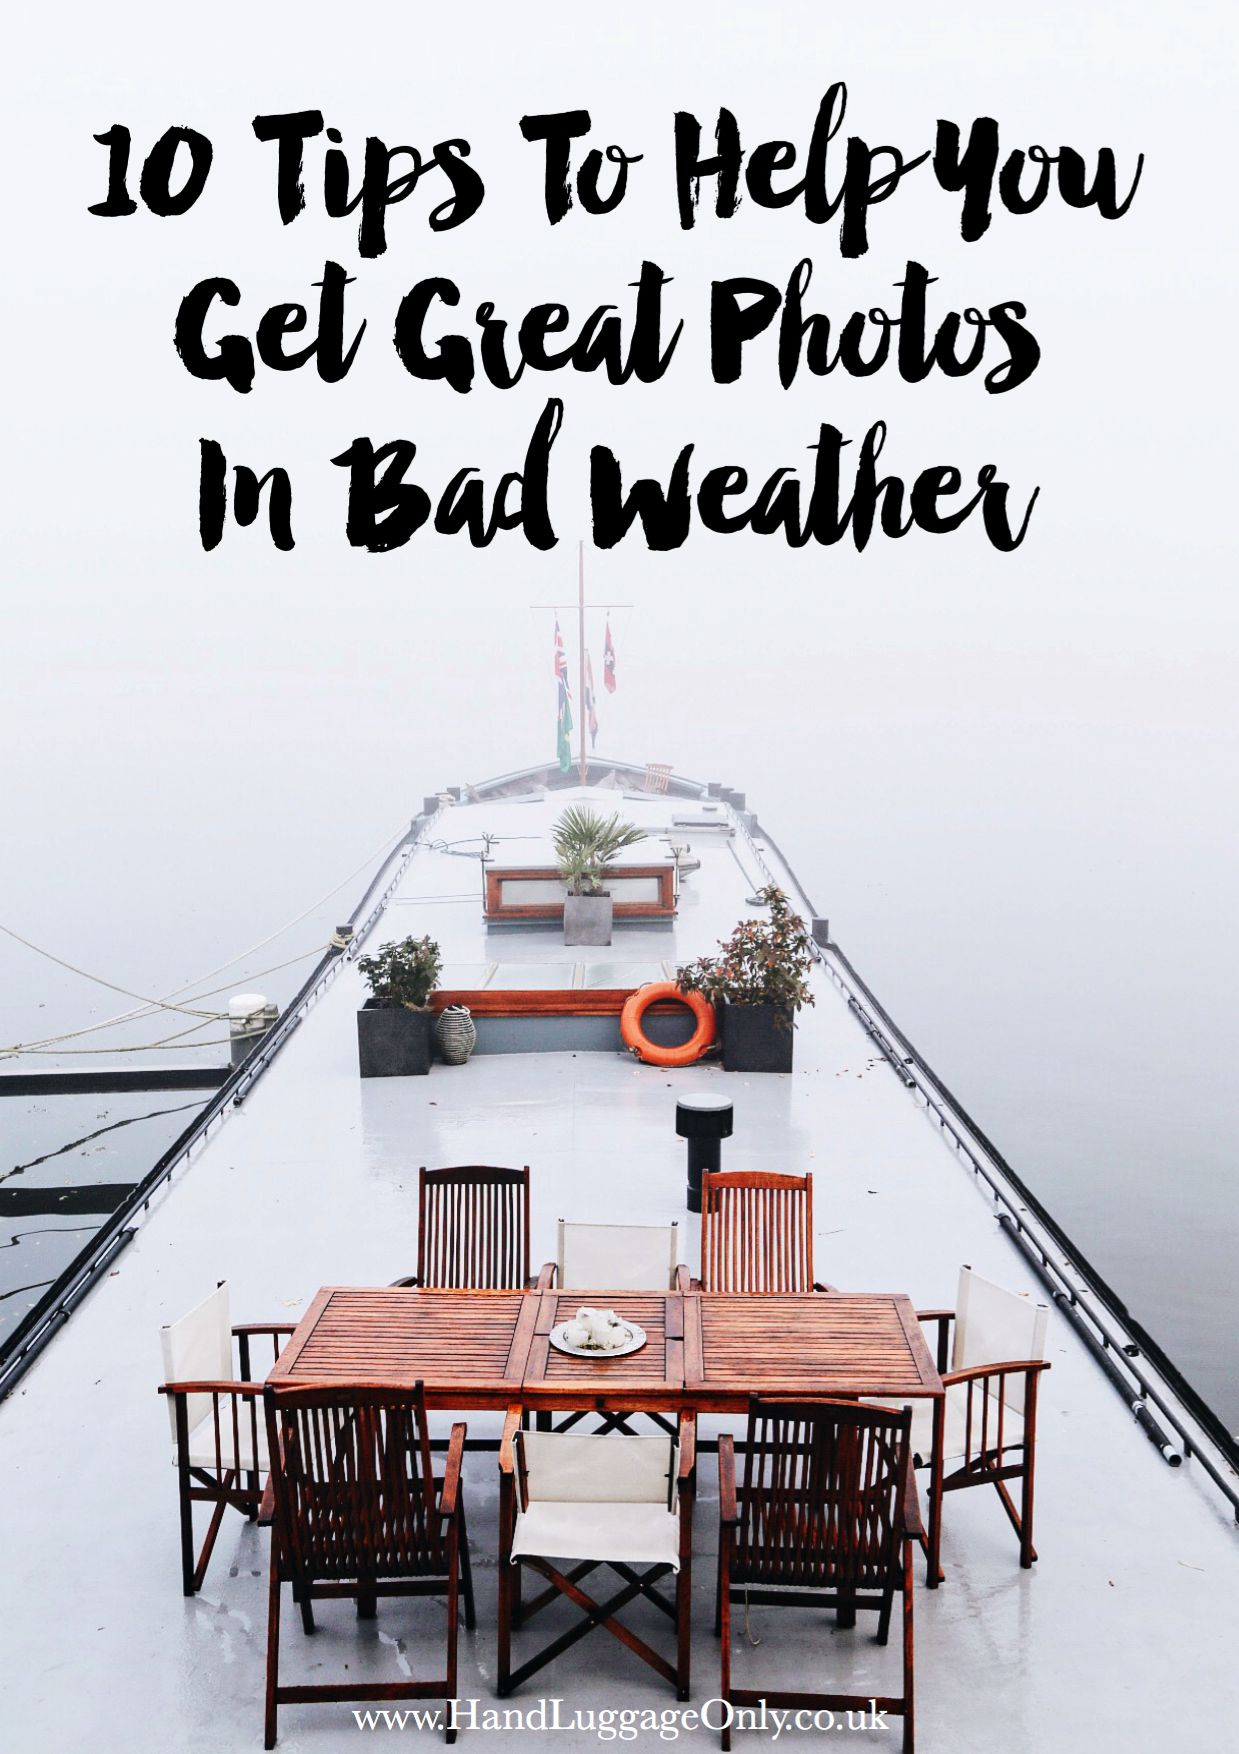 10 Tips To Help You Get Great Photos In Bad Weather